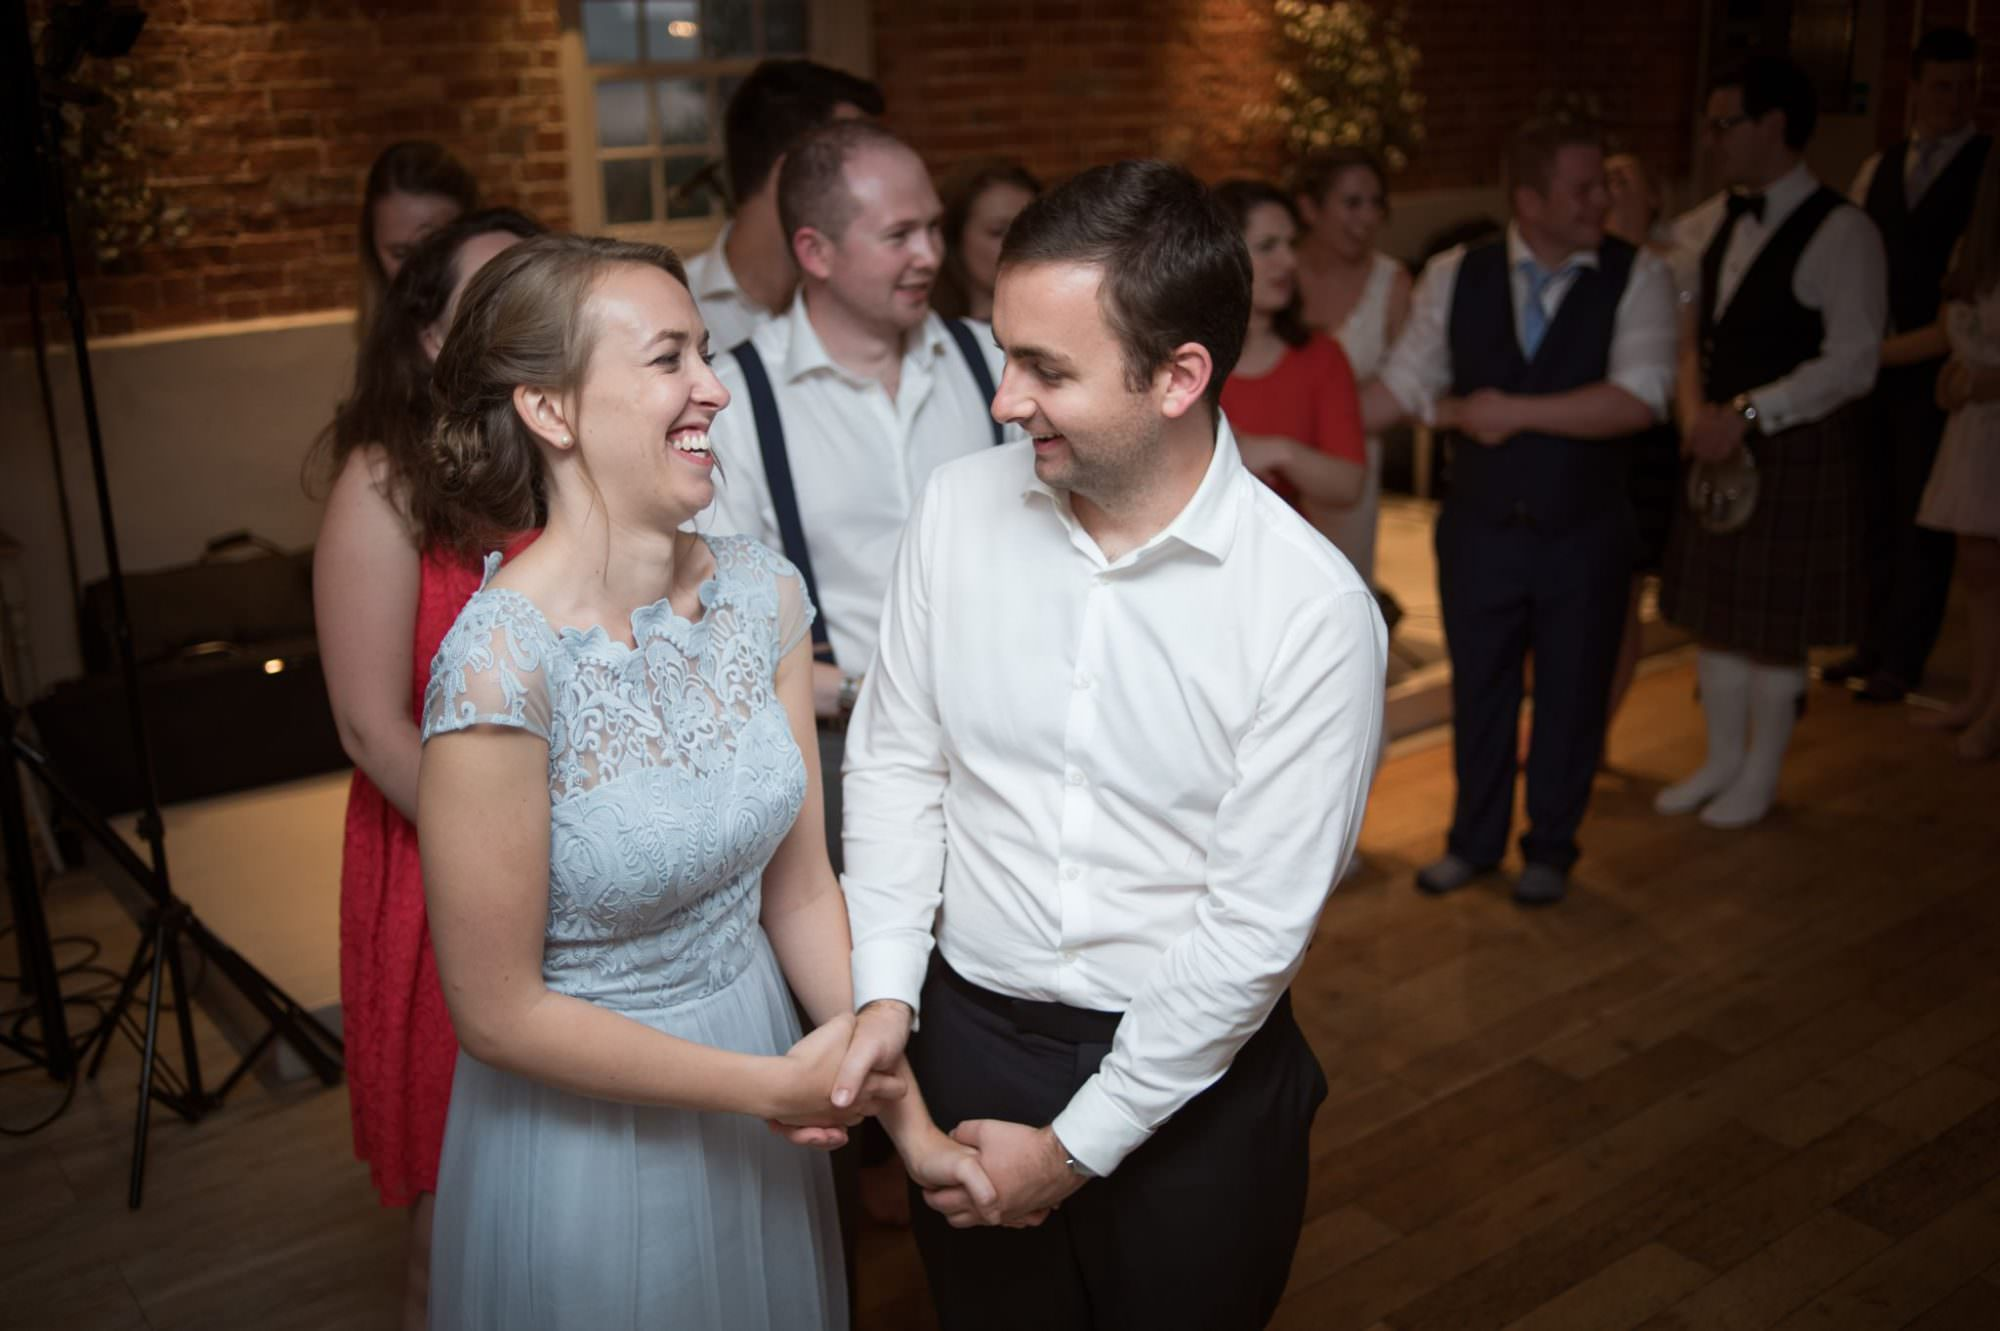 Wedding barn dance at Sopley Mill